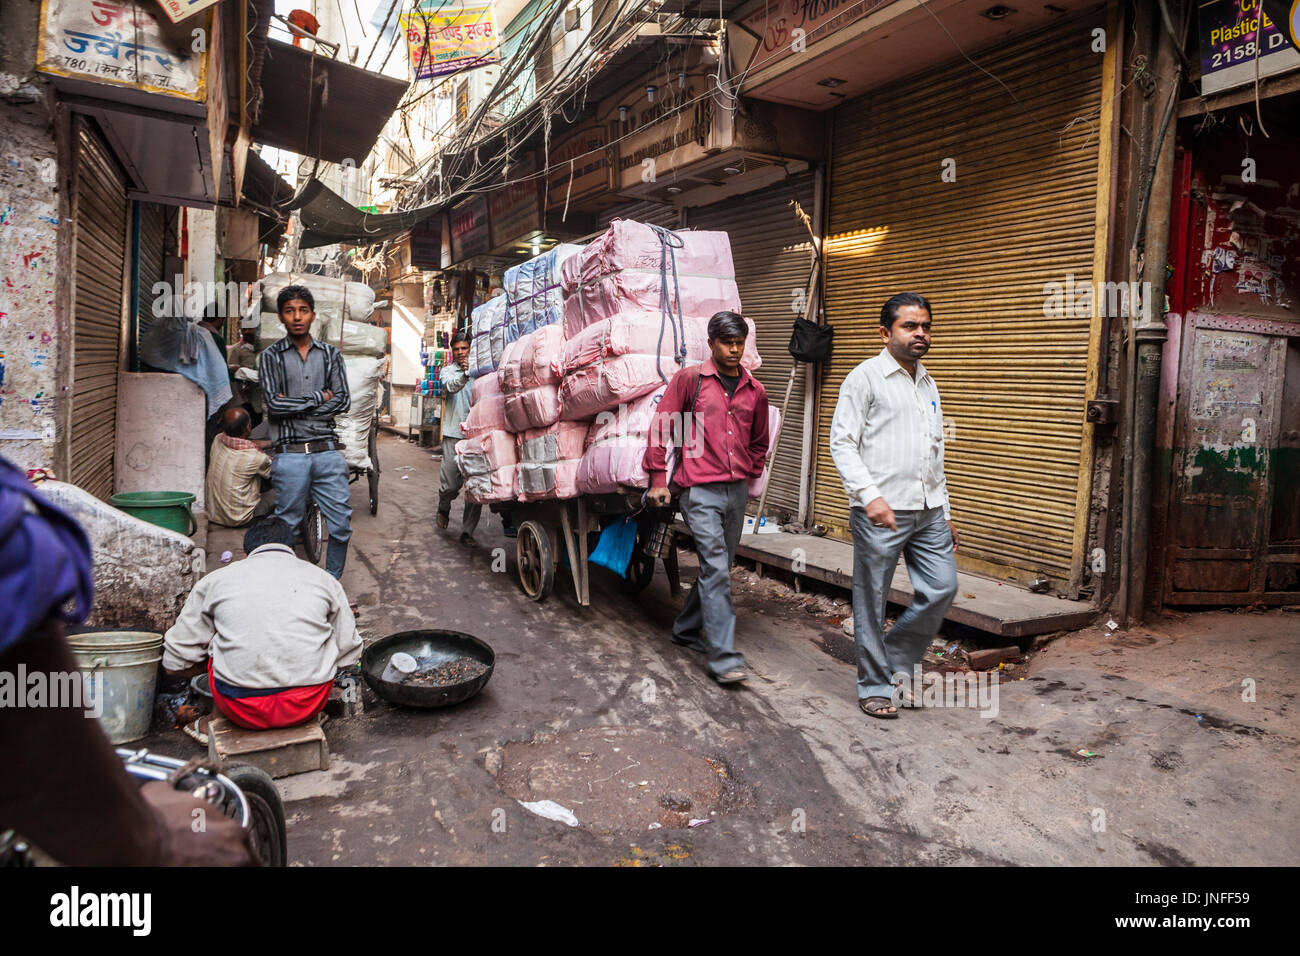 A street scene in Chandni Chowk, Old Delhi, India. - Stock Image